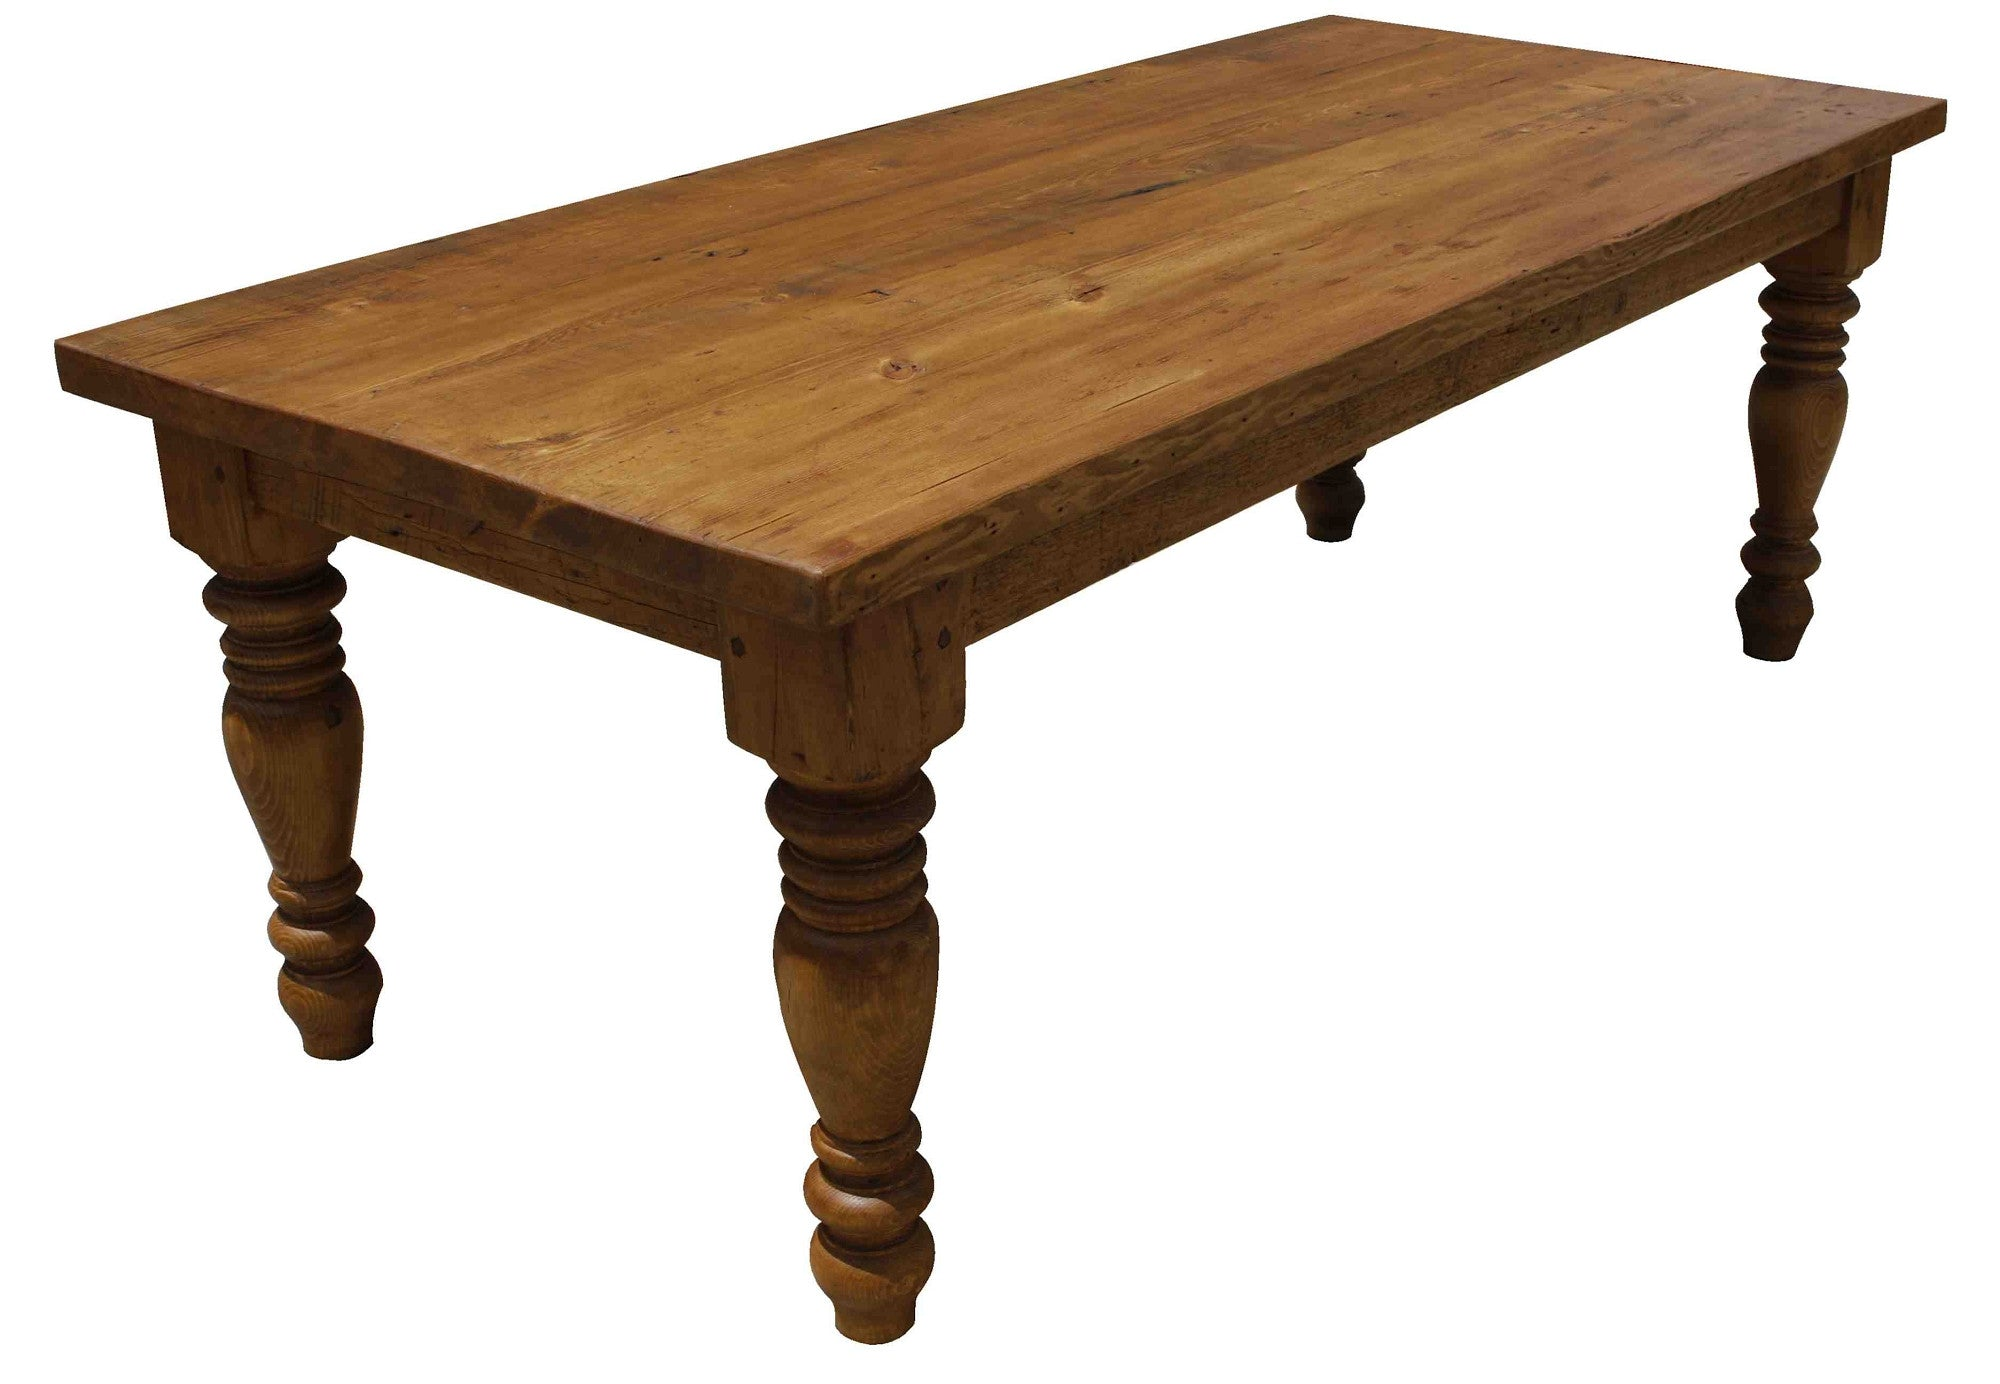 Sienna Reclaimed Wood Turned Leg Dining Table – Mortise & Tenon